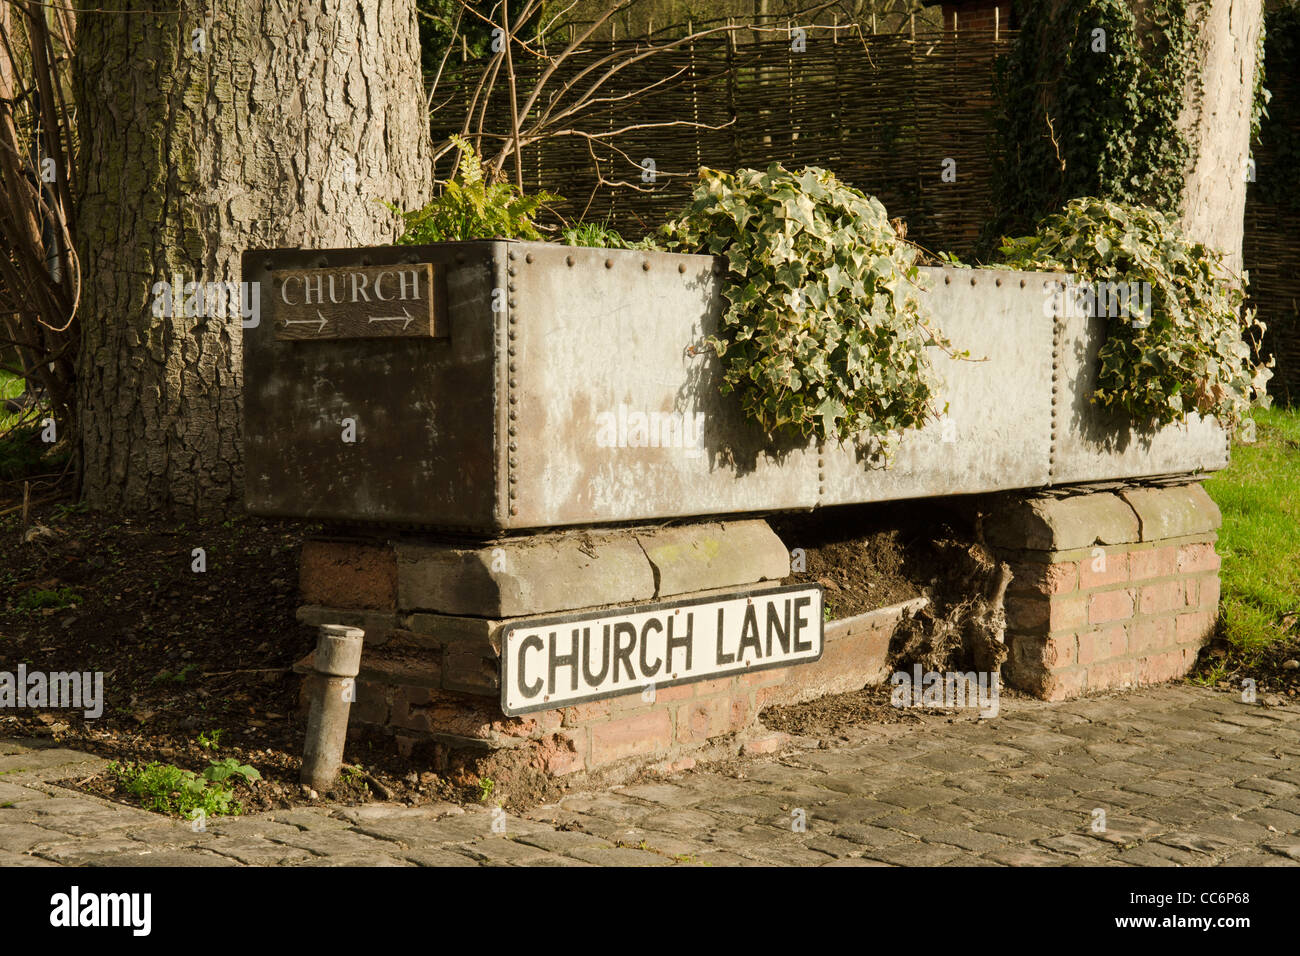 A galvanised metal horse trough now used as a container for growing plants and flowers in Church lane Great Missenden - Stock Image